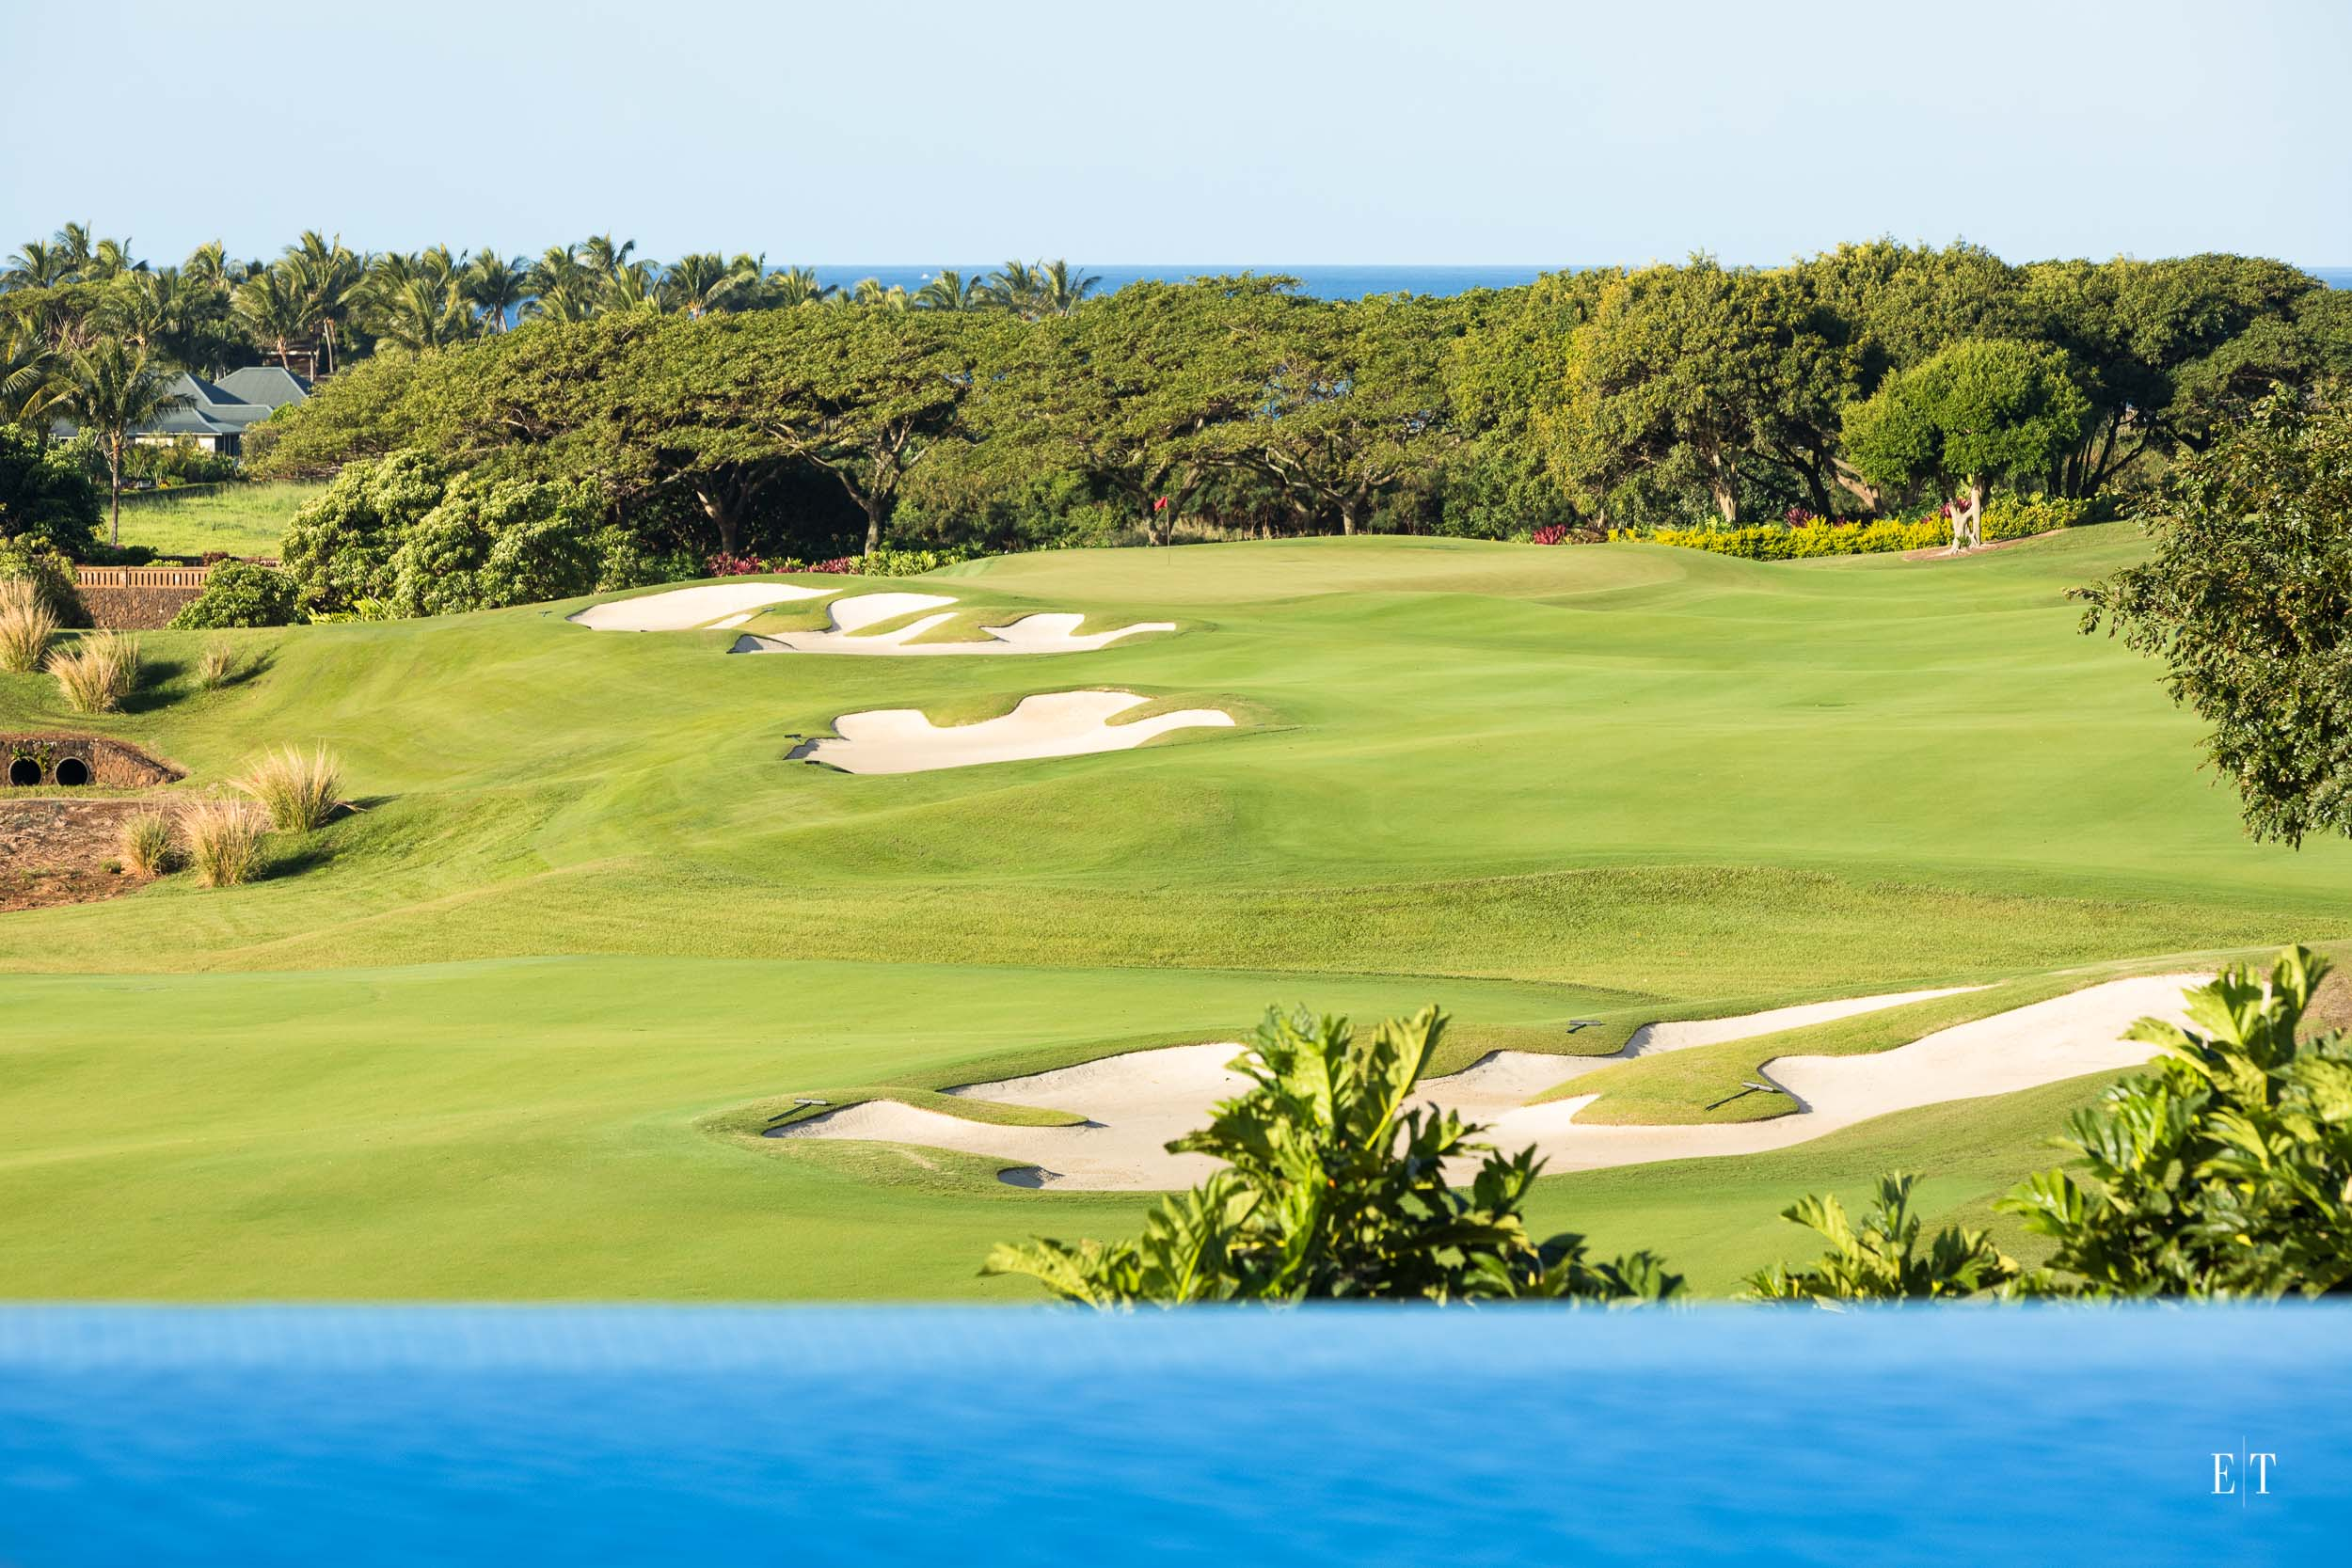 Fabulous views of the ocean and golf course at Kukuiula